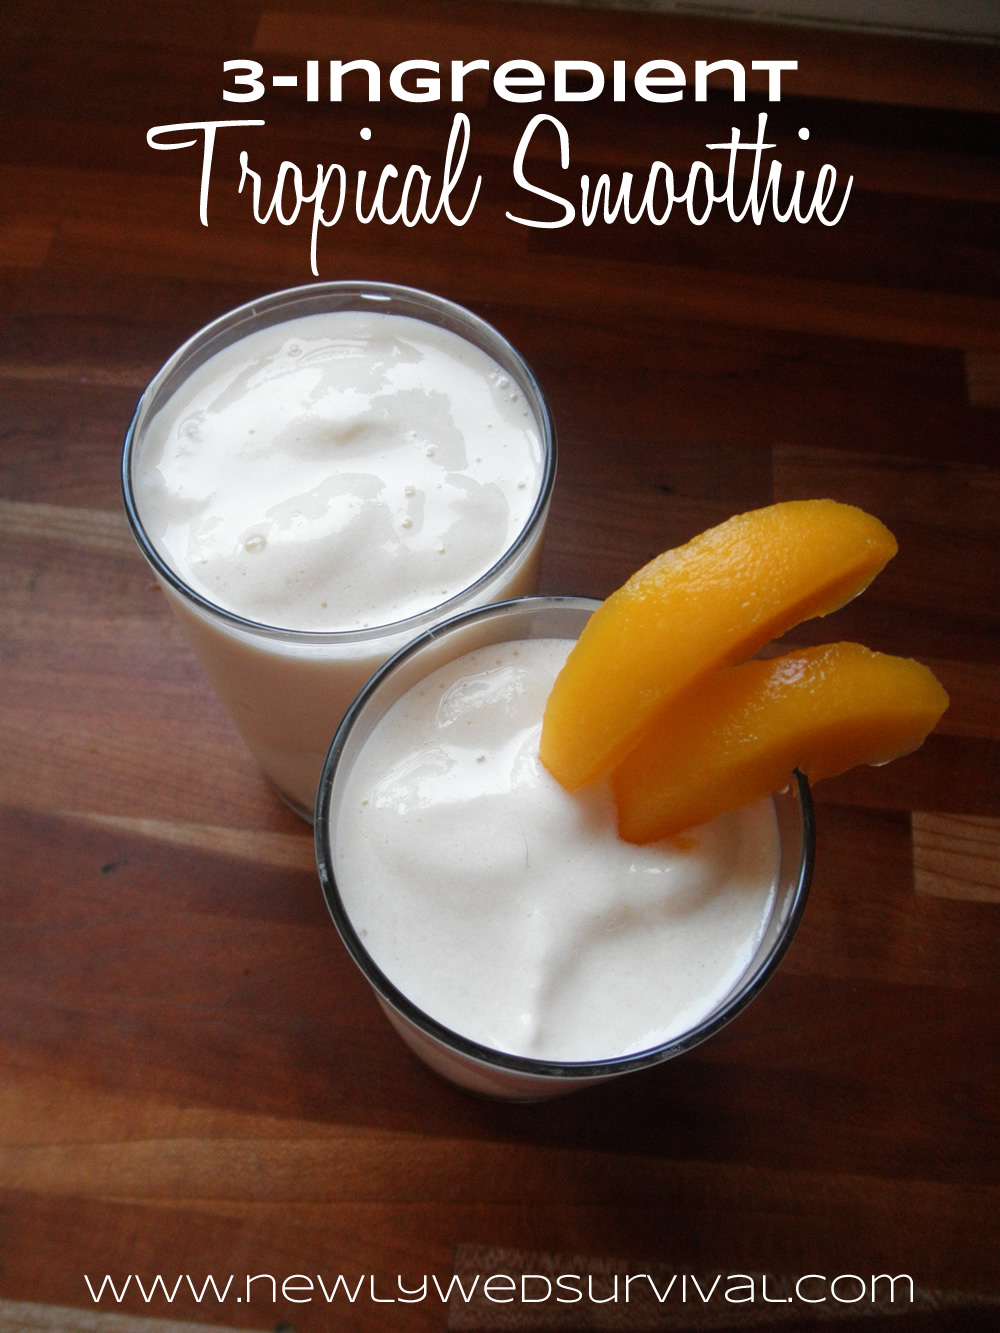 3 Ingredient Tropical Smoothie #naturalprobiotic #shop #cbias